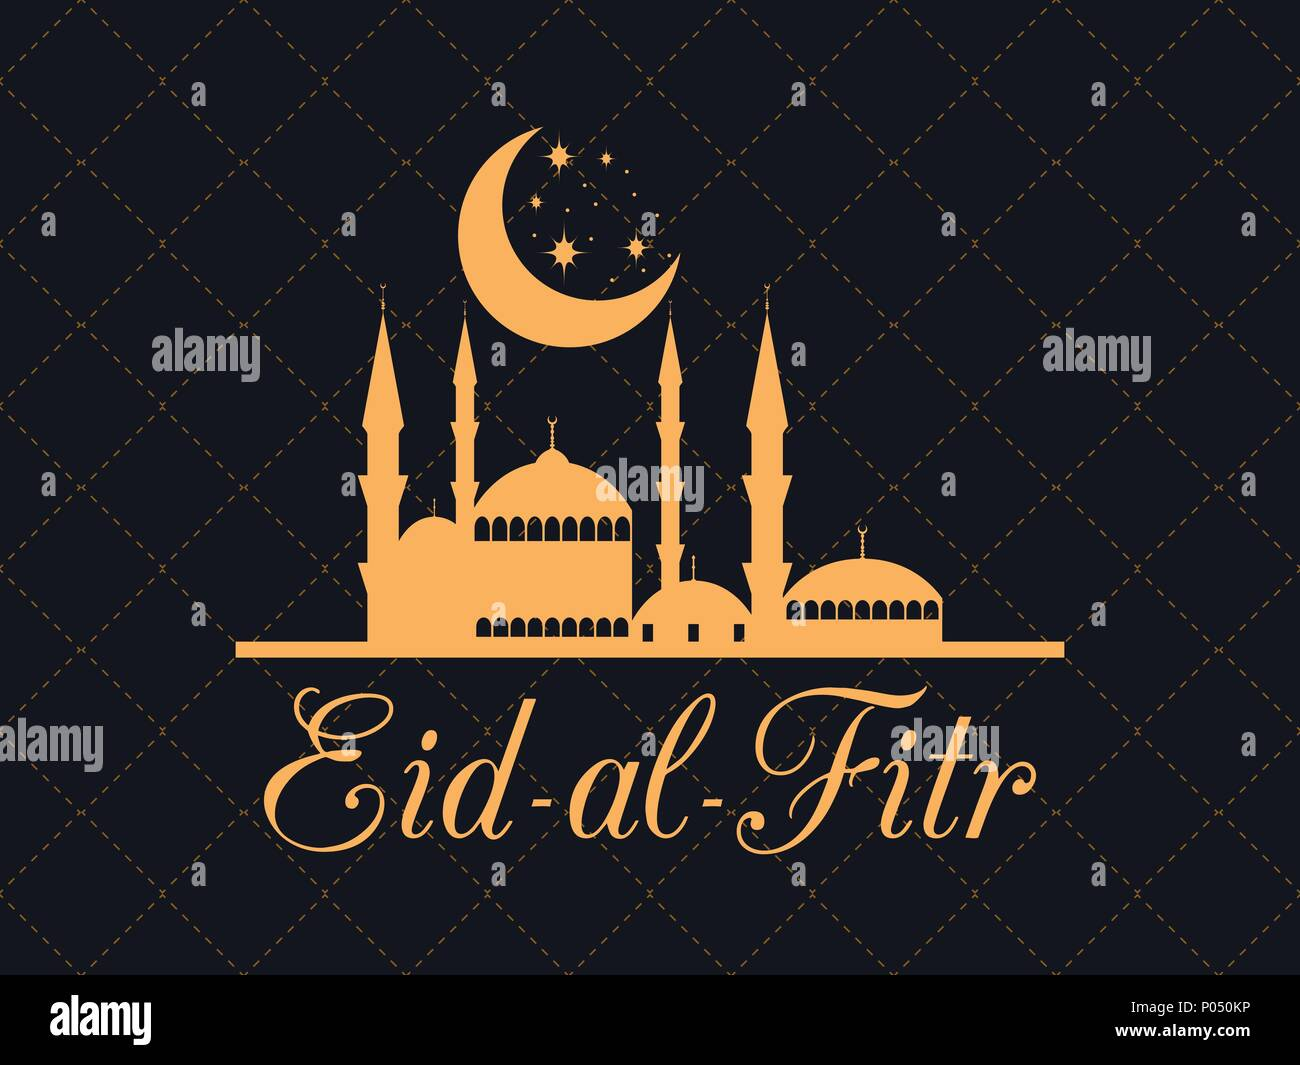 Eid al fitr islamic holiday greeting card with a mosque and the eid al fitr islamic holiday greeting card with a mosque and the moon eid mubarak vector illustration m4hsunfo